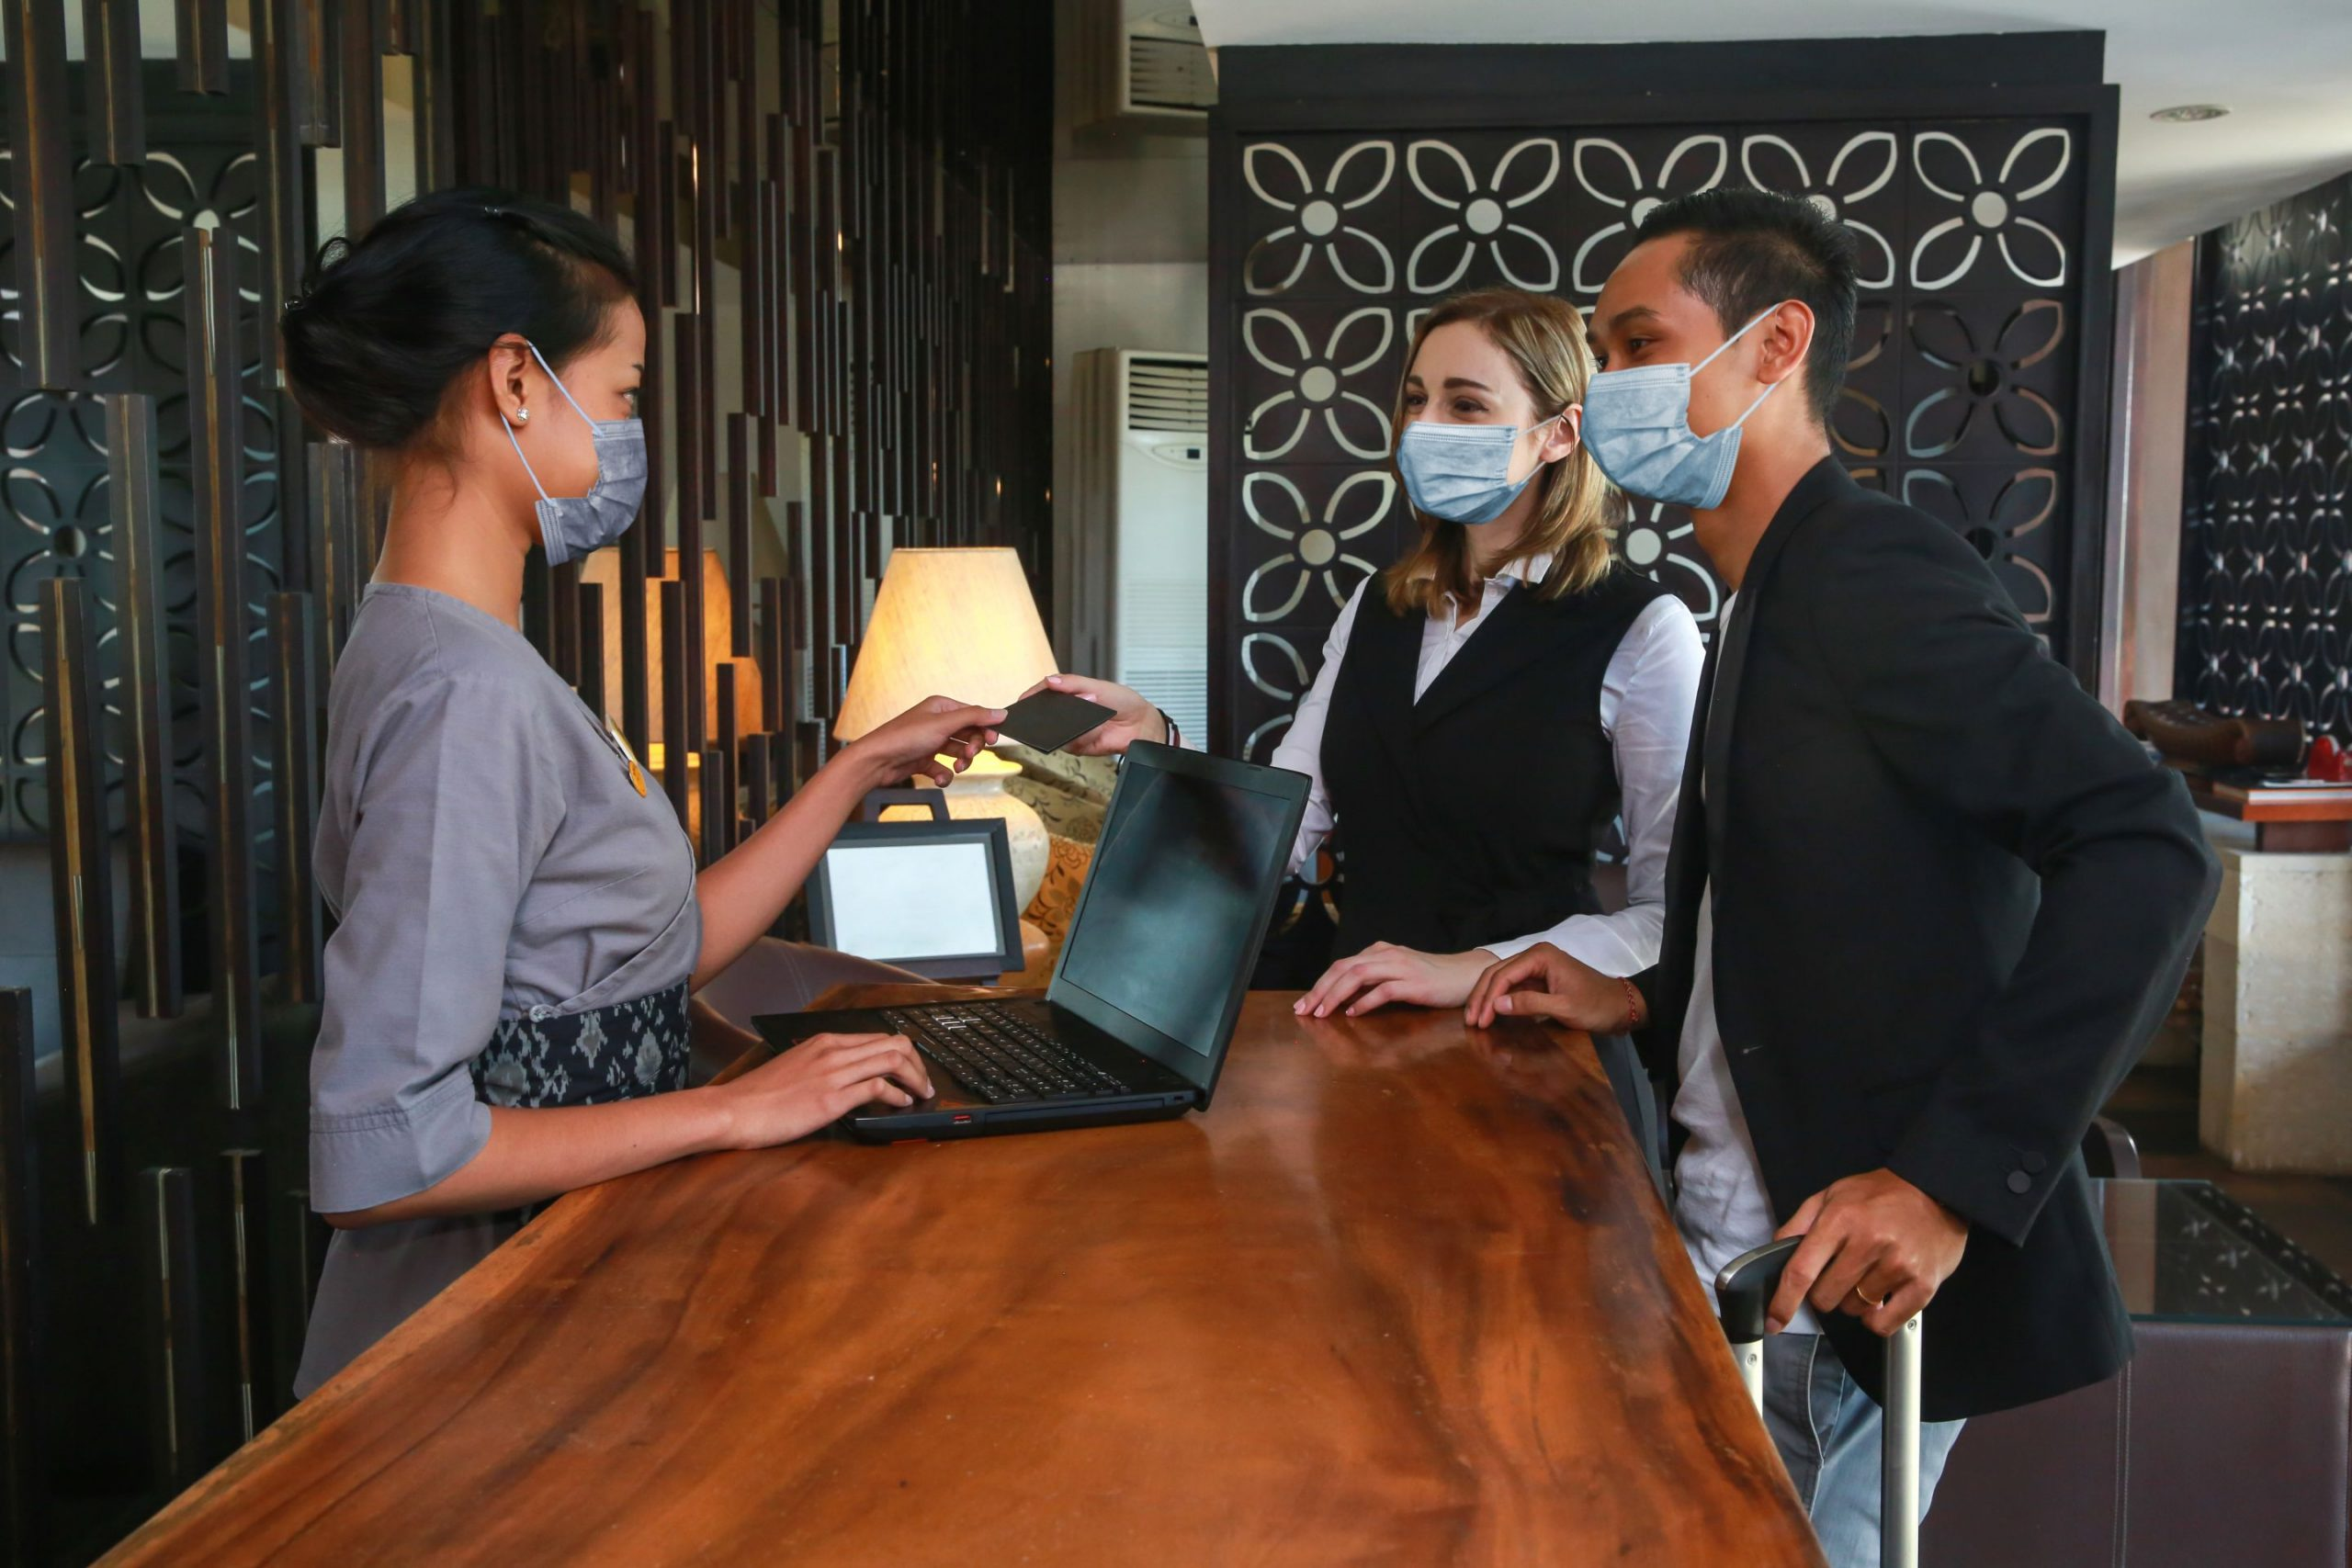 Customers paying at restaurant | Featured image for HLTSS ICHS64 FOR HOSPITALITY.